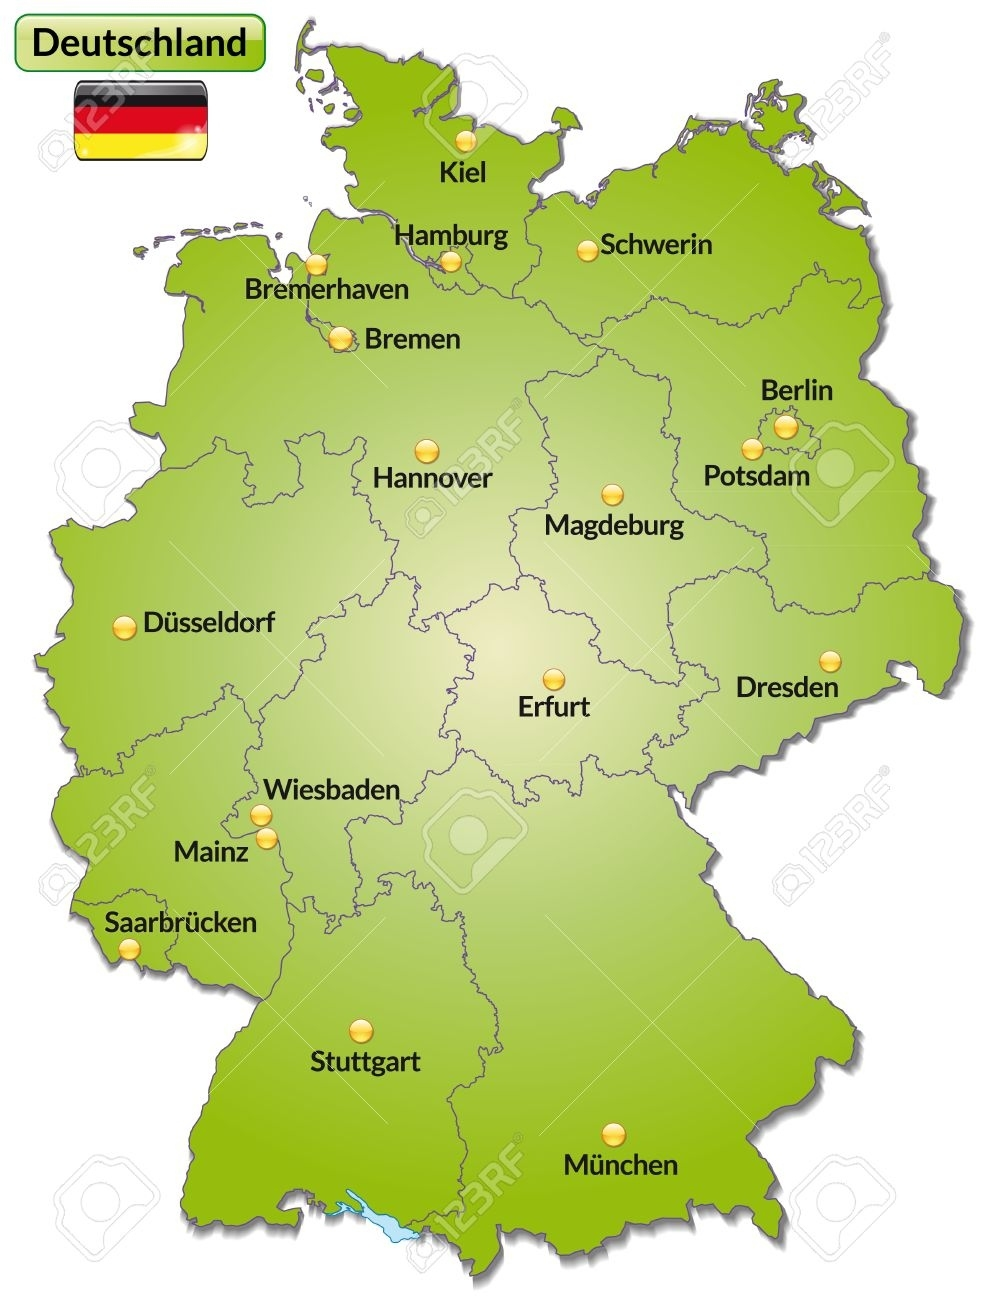 Map Of Germany With Main Cities In Green throughout Map Of Germany With Major Cities